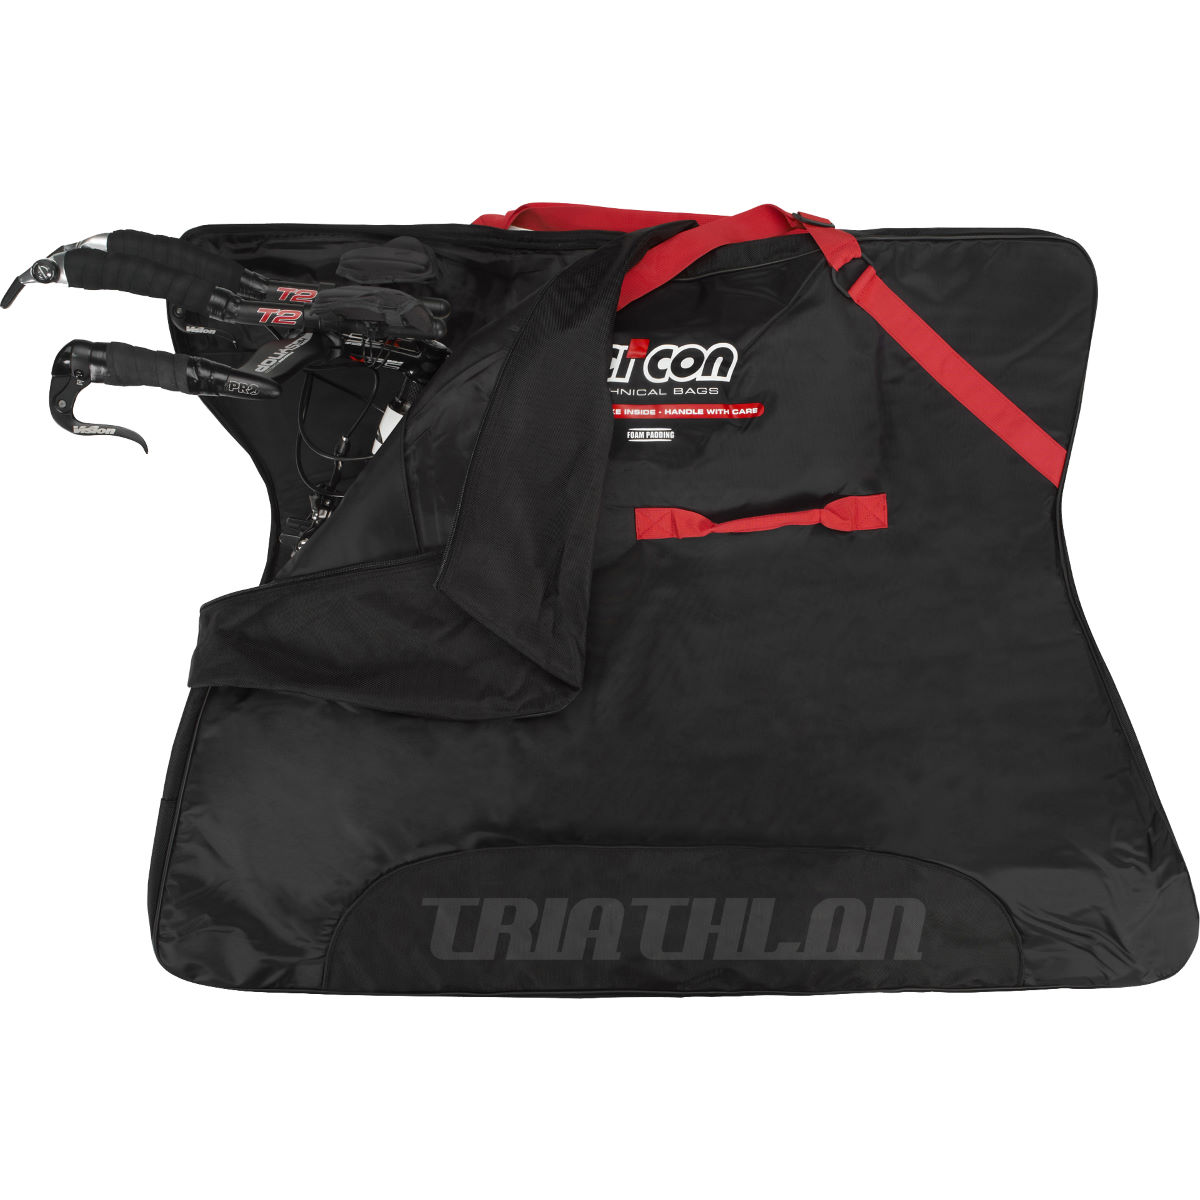 Scicon Soft Bike Bag Travel Plus - Bolsas portabicicletas